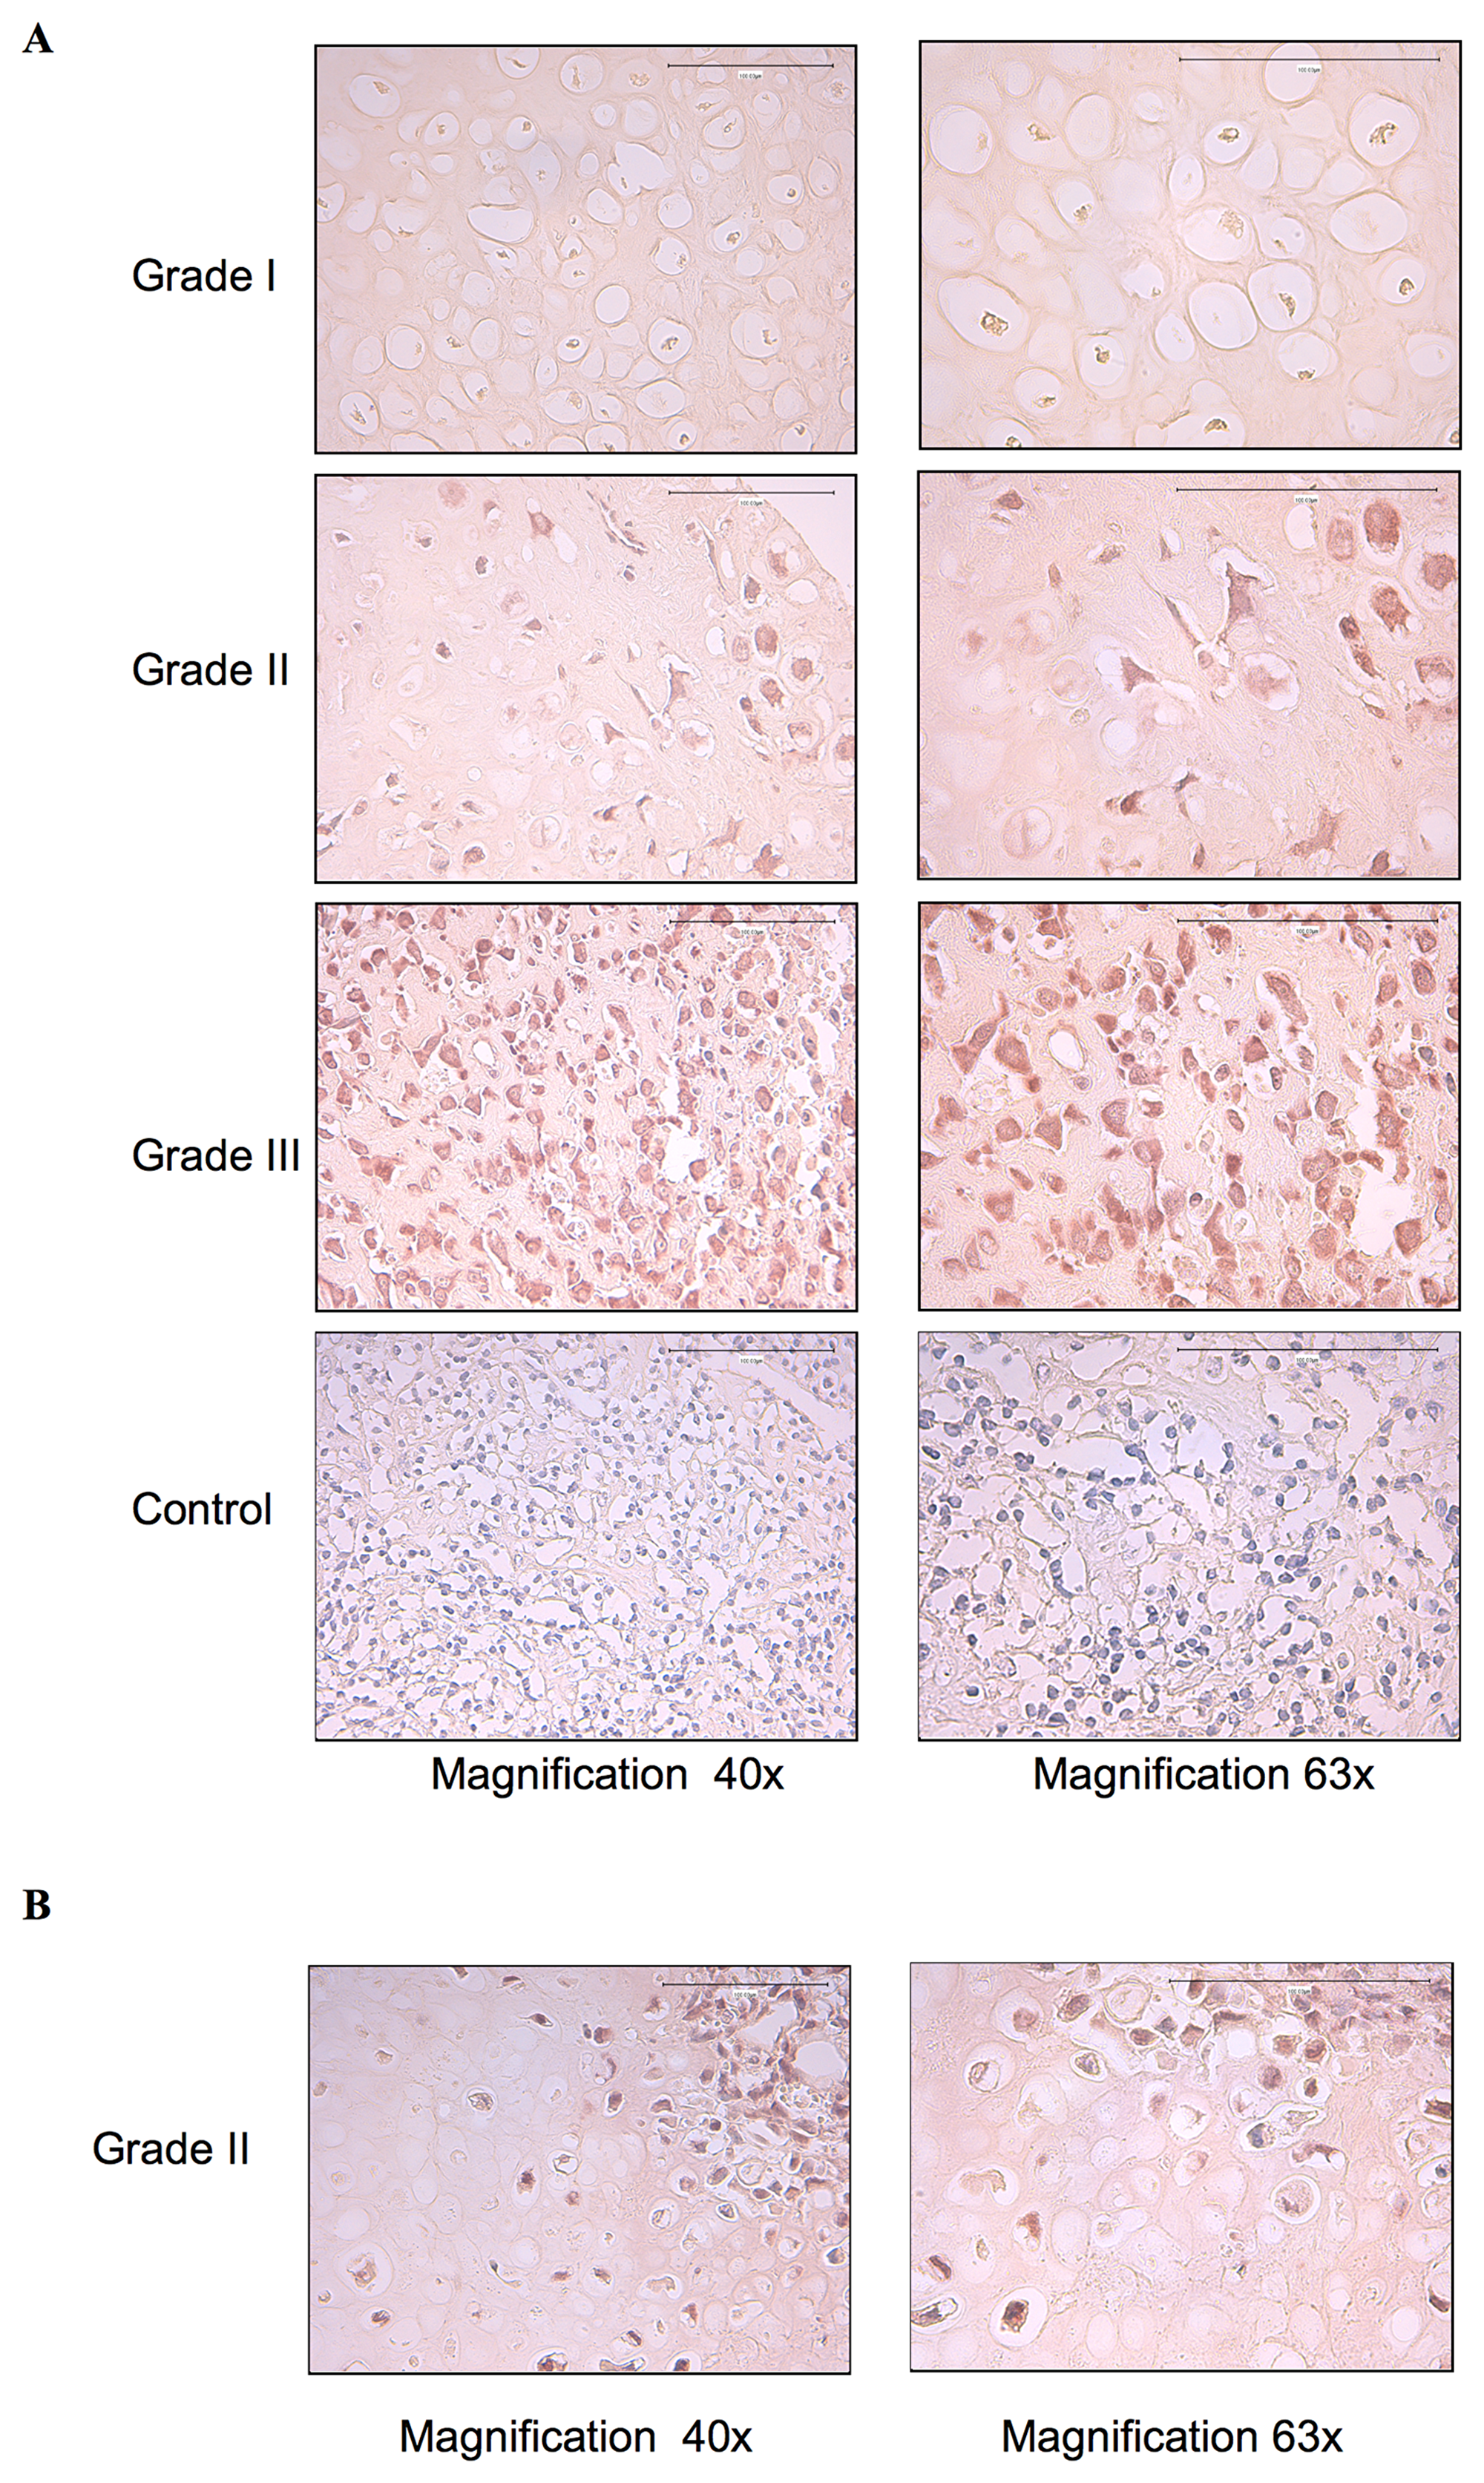 EGFR is constitutively activated in high-grade chondrosarcoma tumor biopsies.